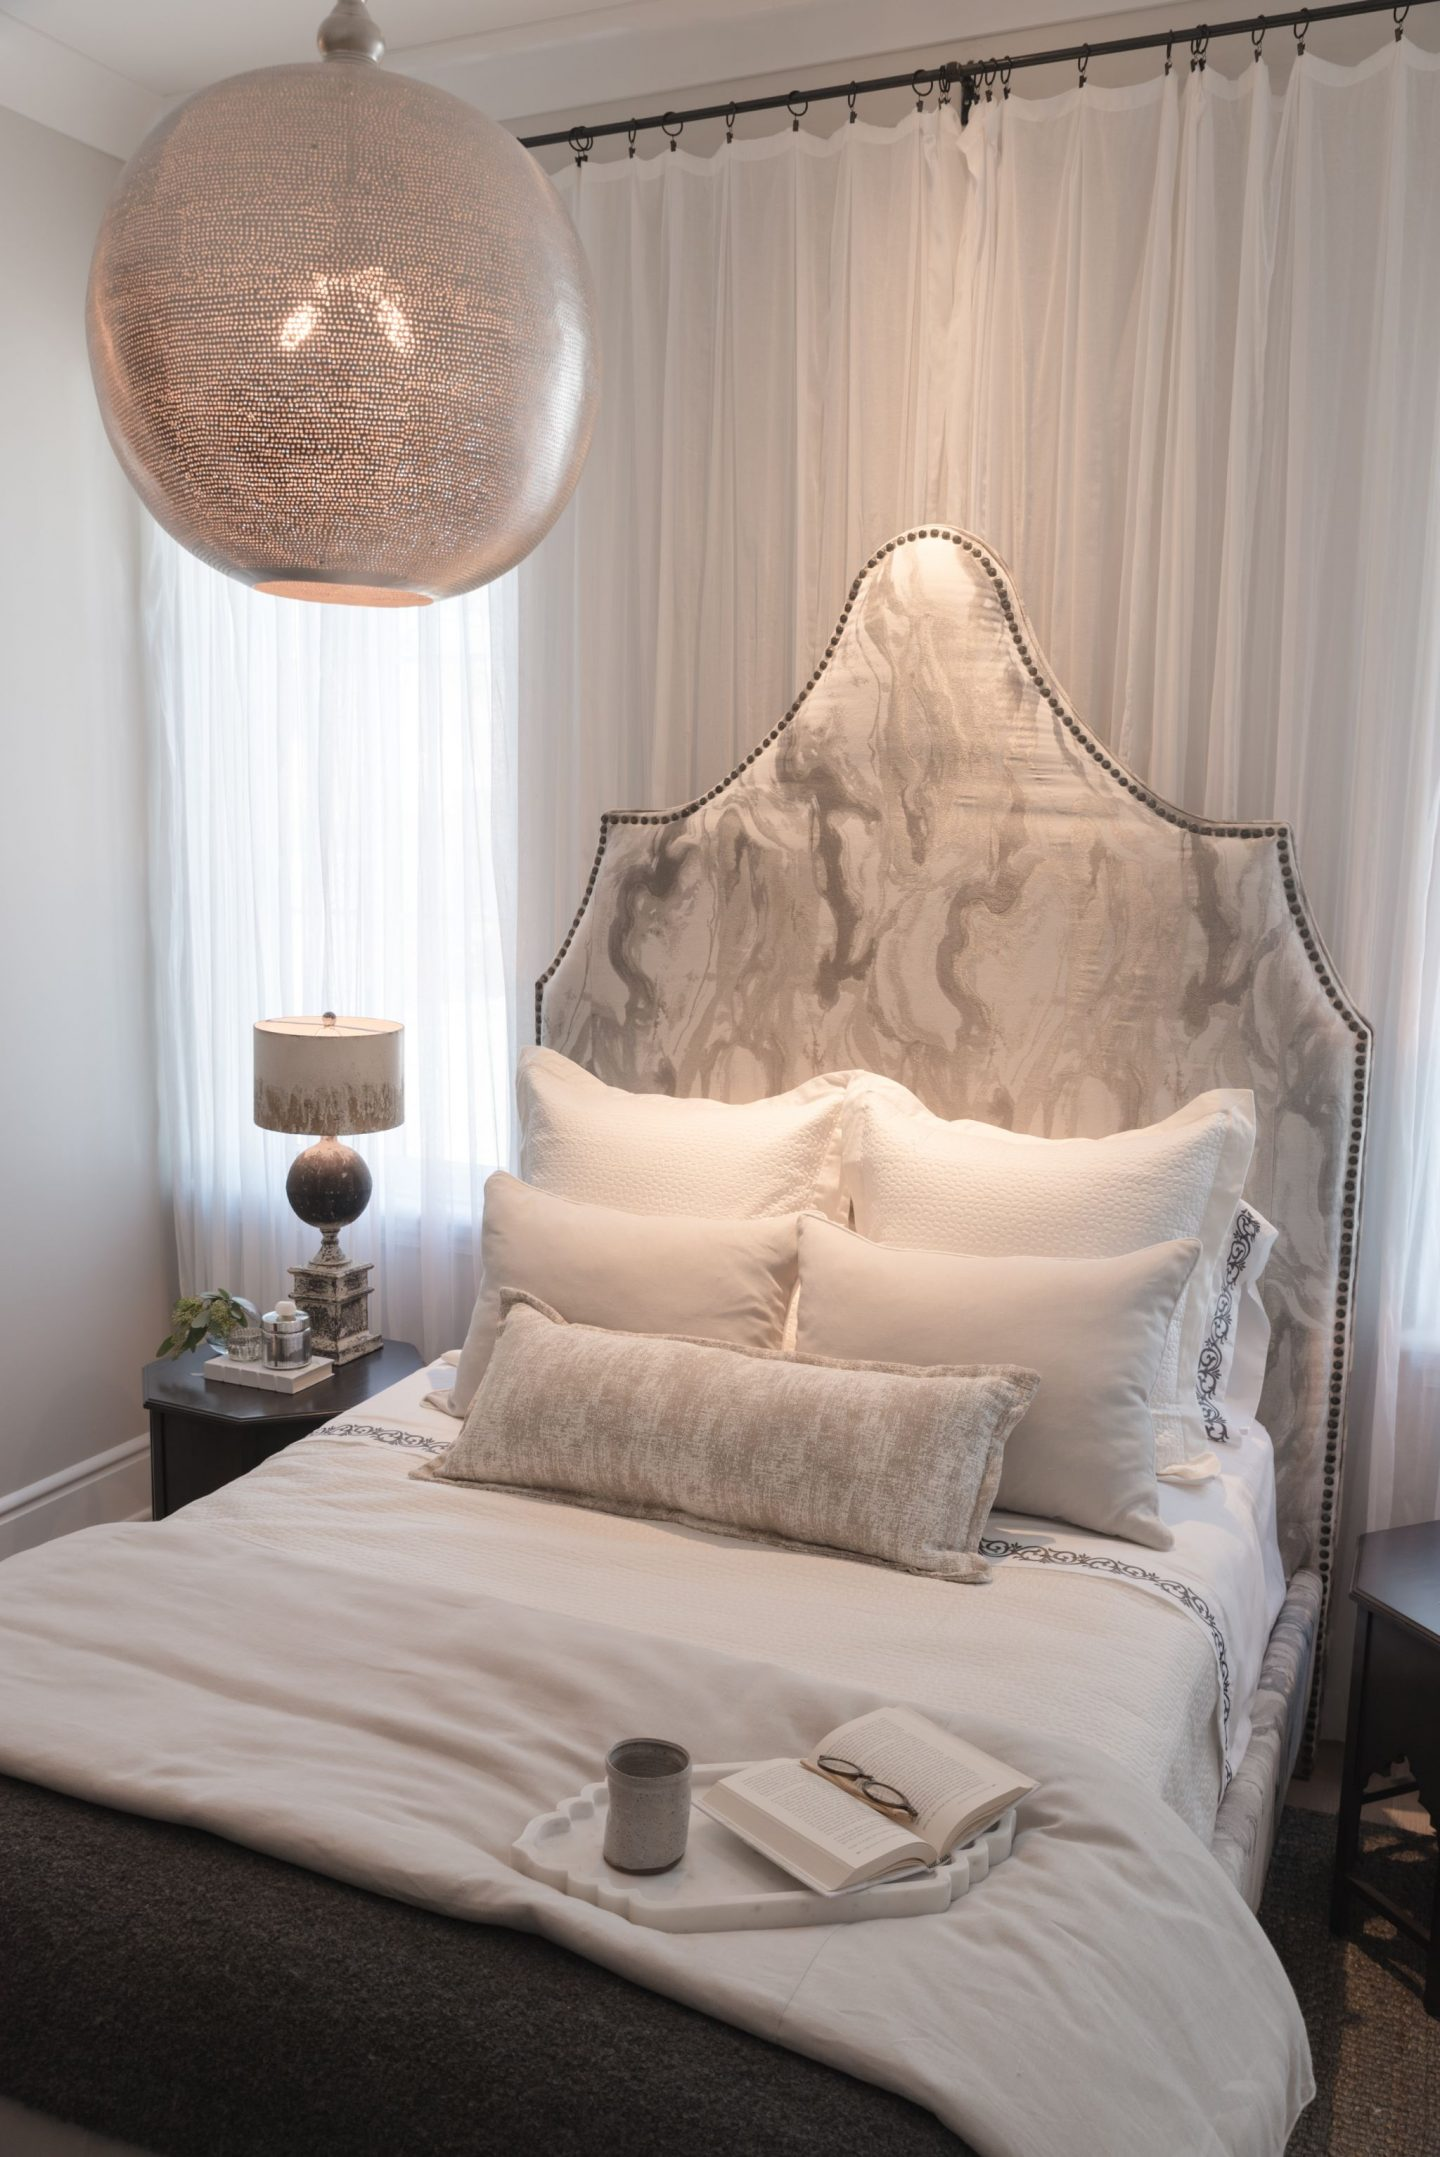 Modern luxe bedroom by Chelsea Skye Mills for O'More Show House. 11 Interior Design Ideas: Nashville Show House.